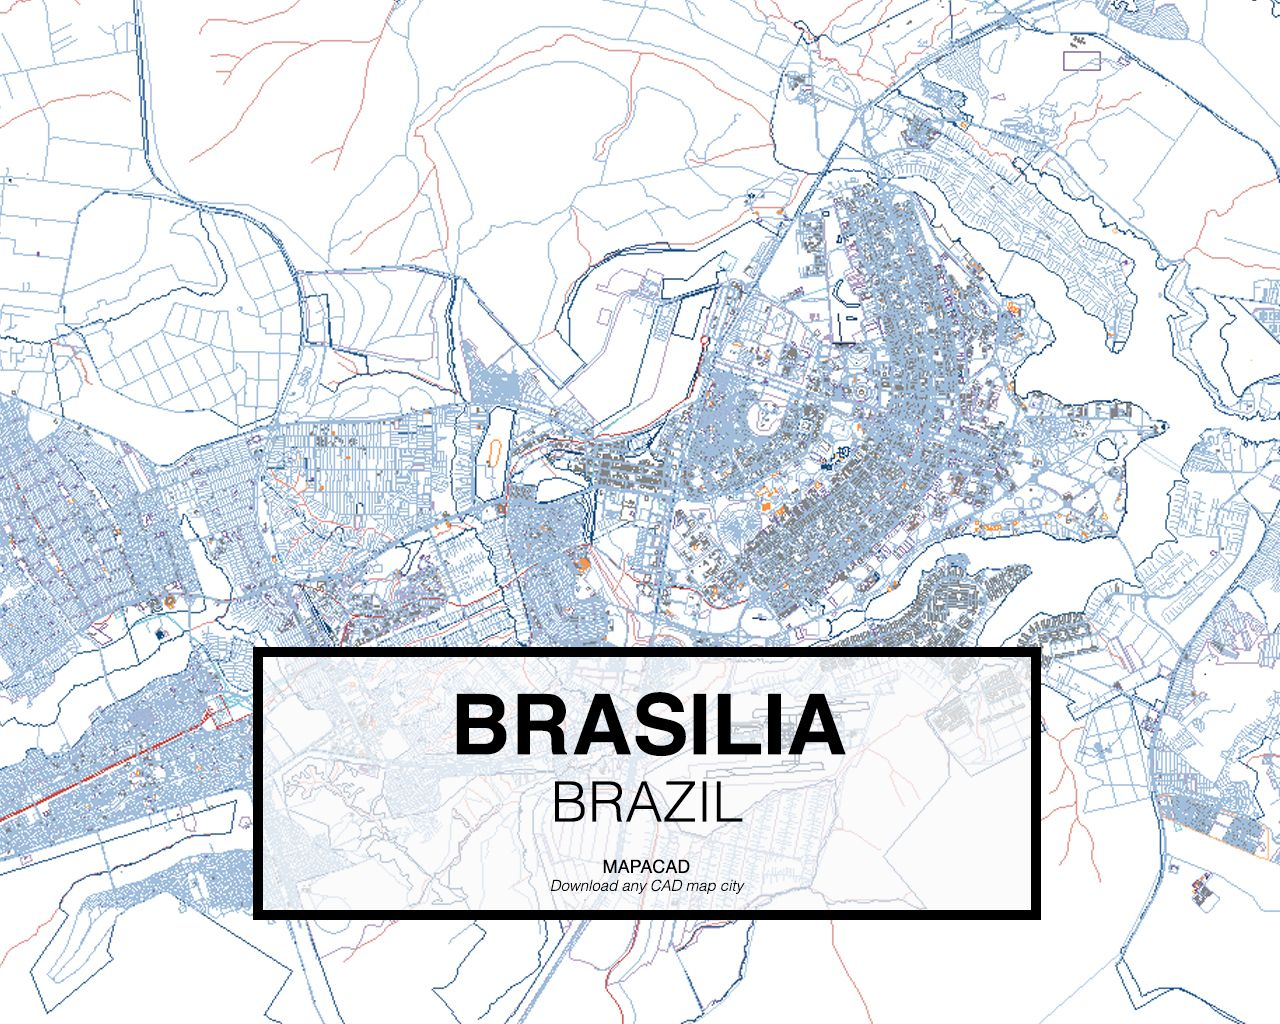 mapa portugal dwg Brasilia   Brazil. Download CAD Map city in dwg ready to use in  mapa portugal dwg